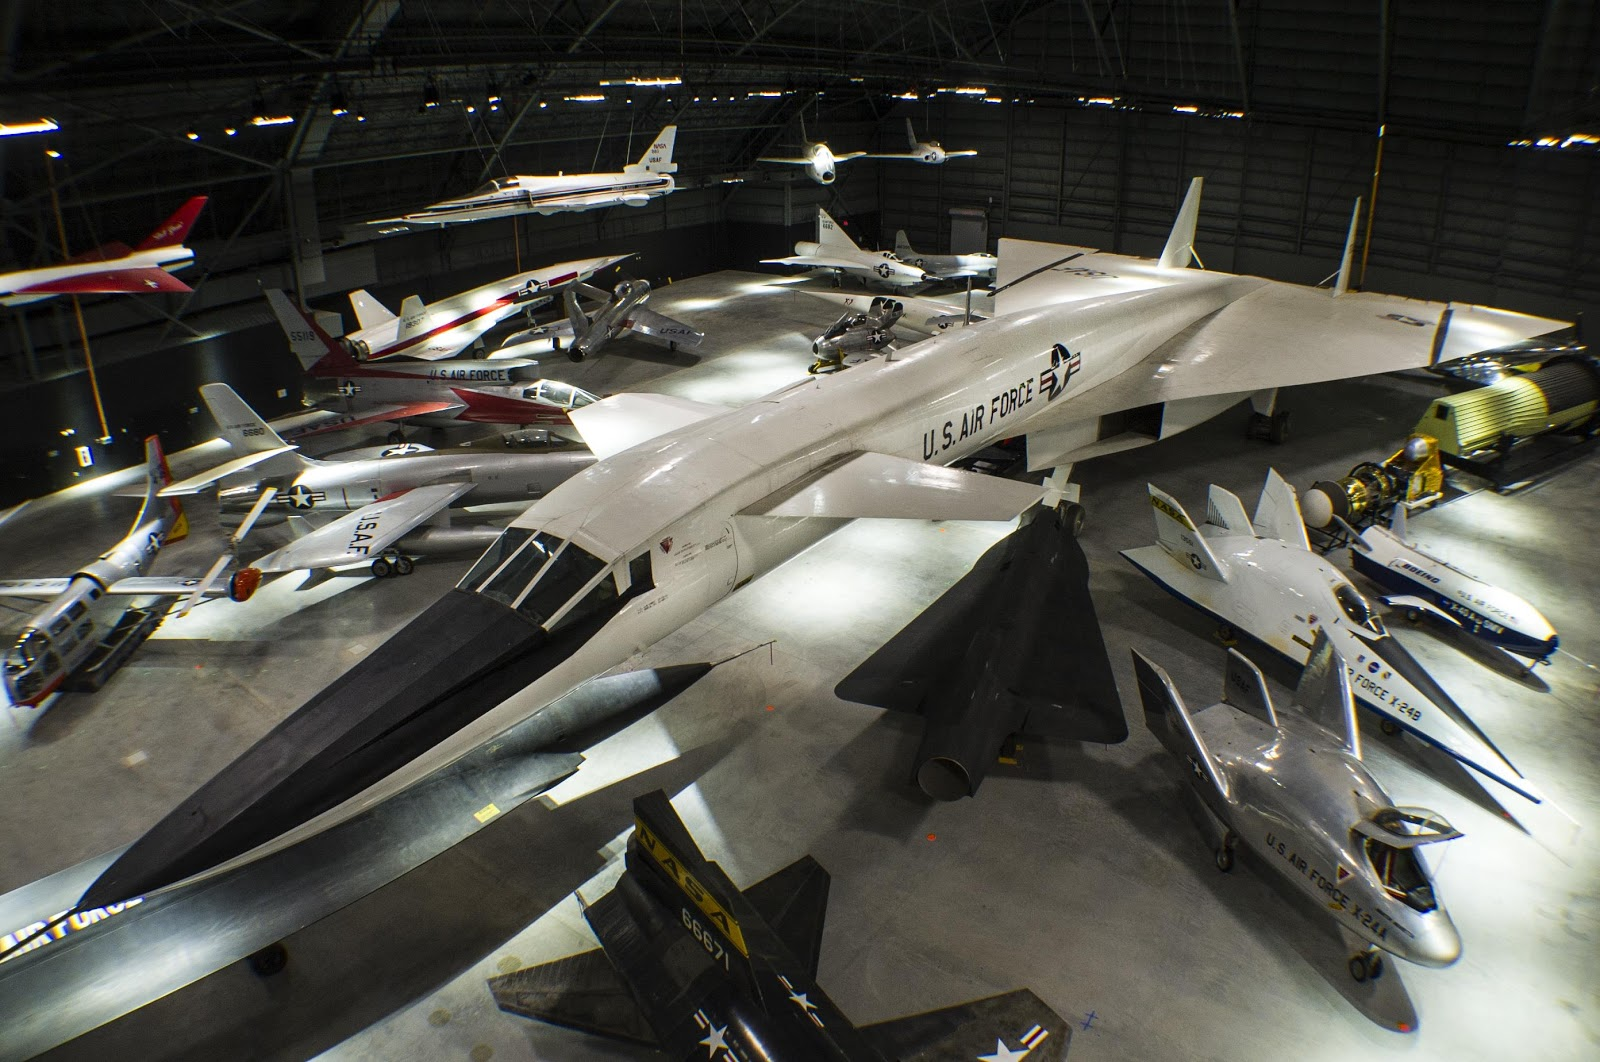 displays of various different aircraft at the National Museum of the US Air Force